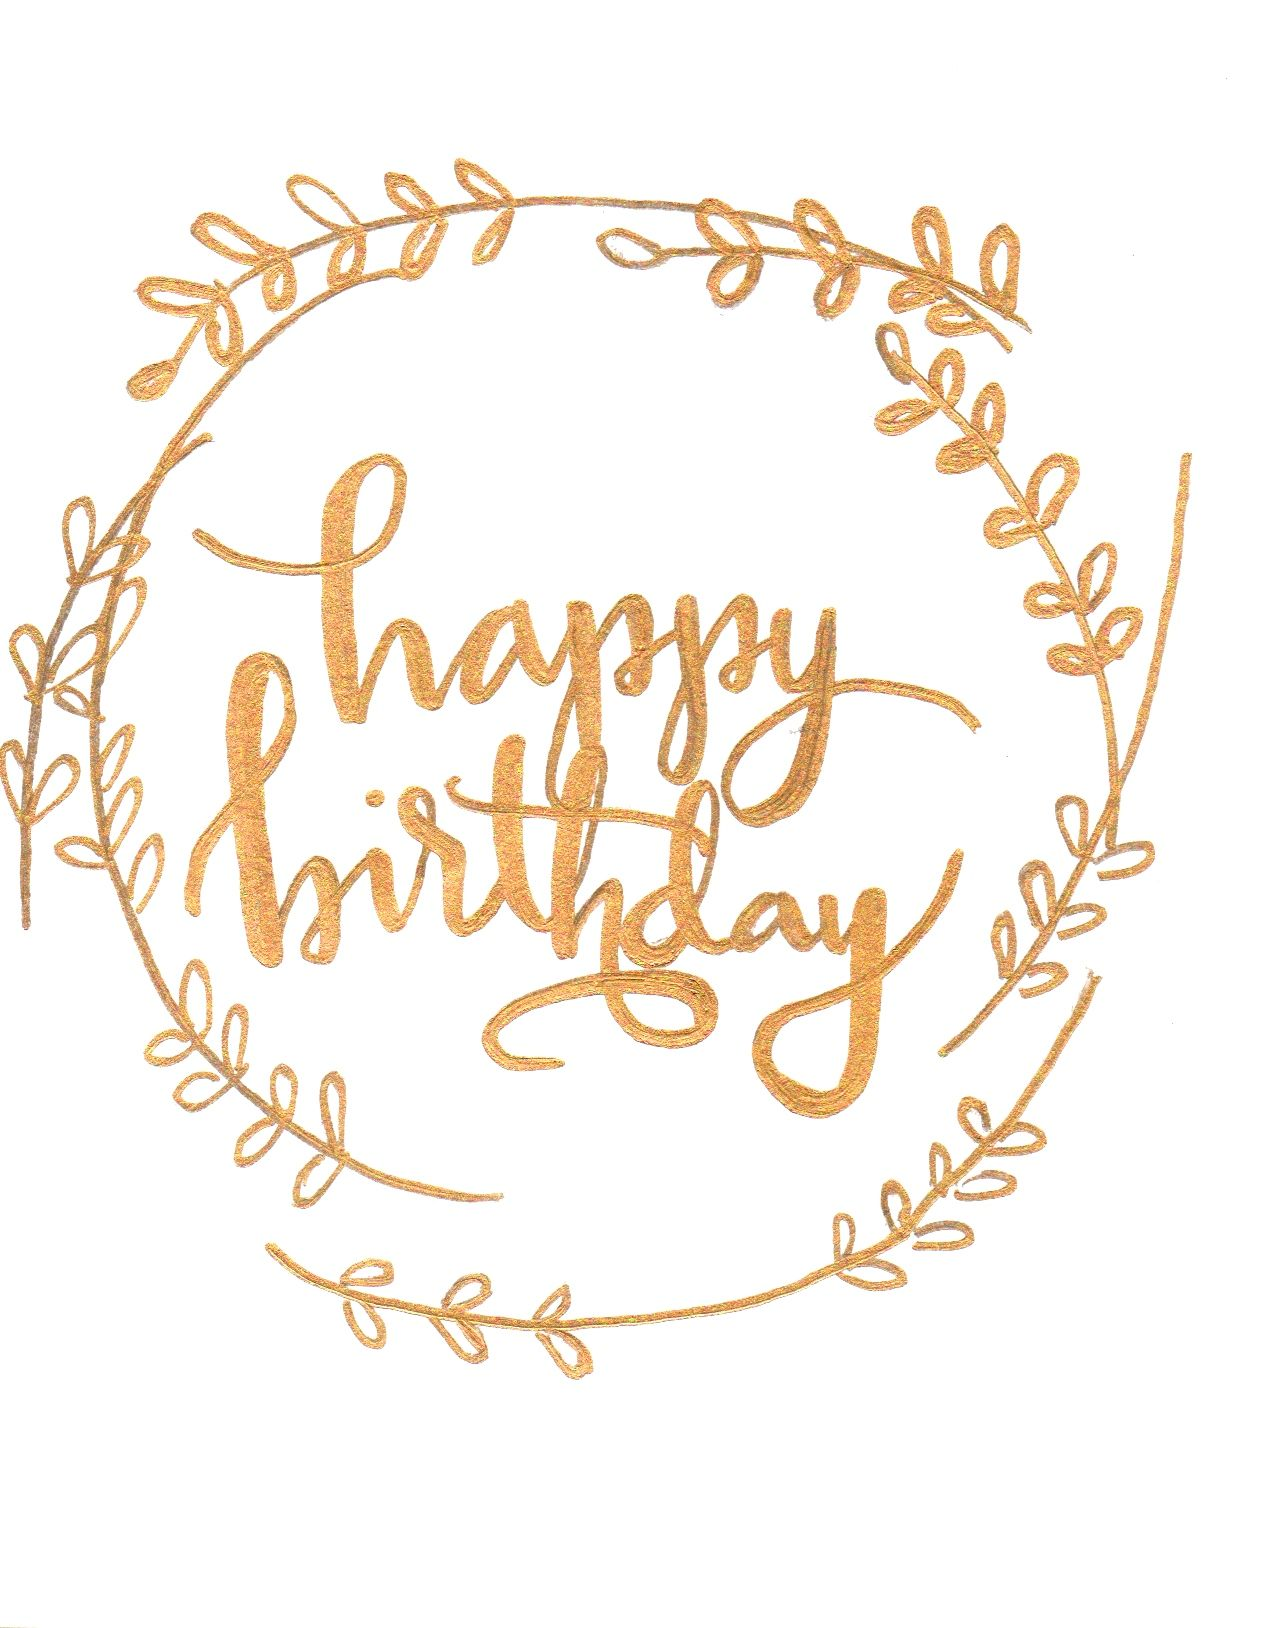 Happy Birthday Moderncalligraphy Calligraphy Gold Lettering